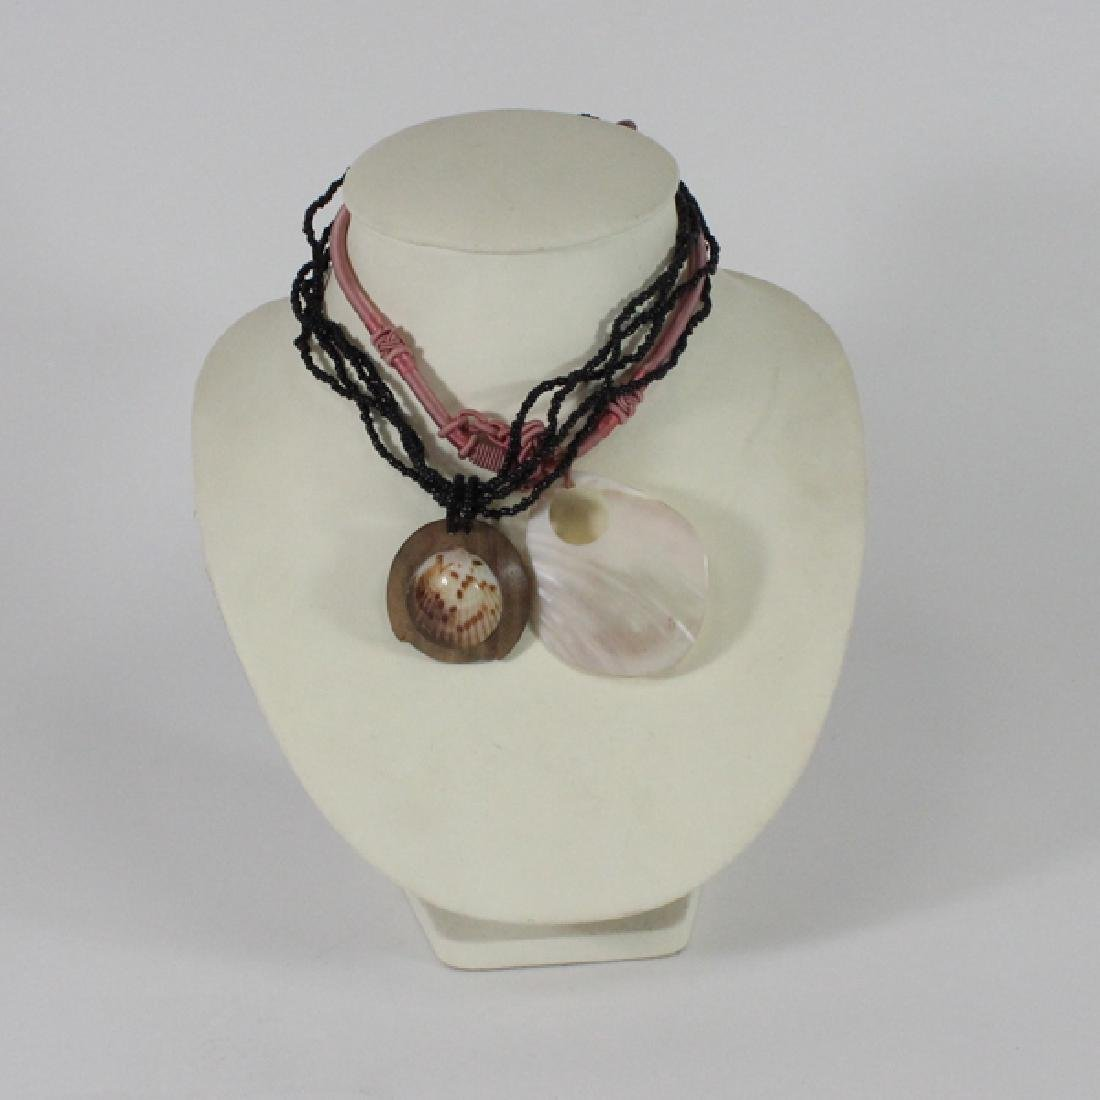 2 New Handcarved Shell Necklace Choker Pendants